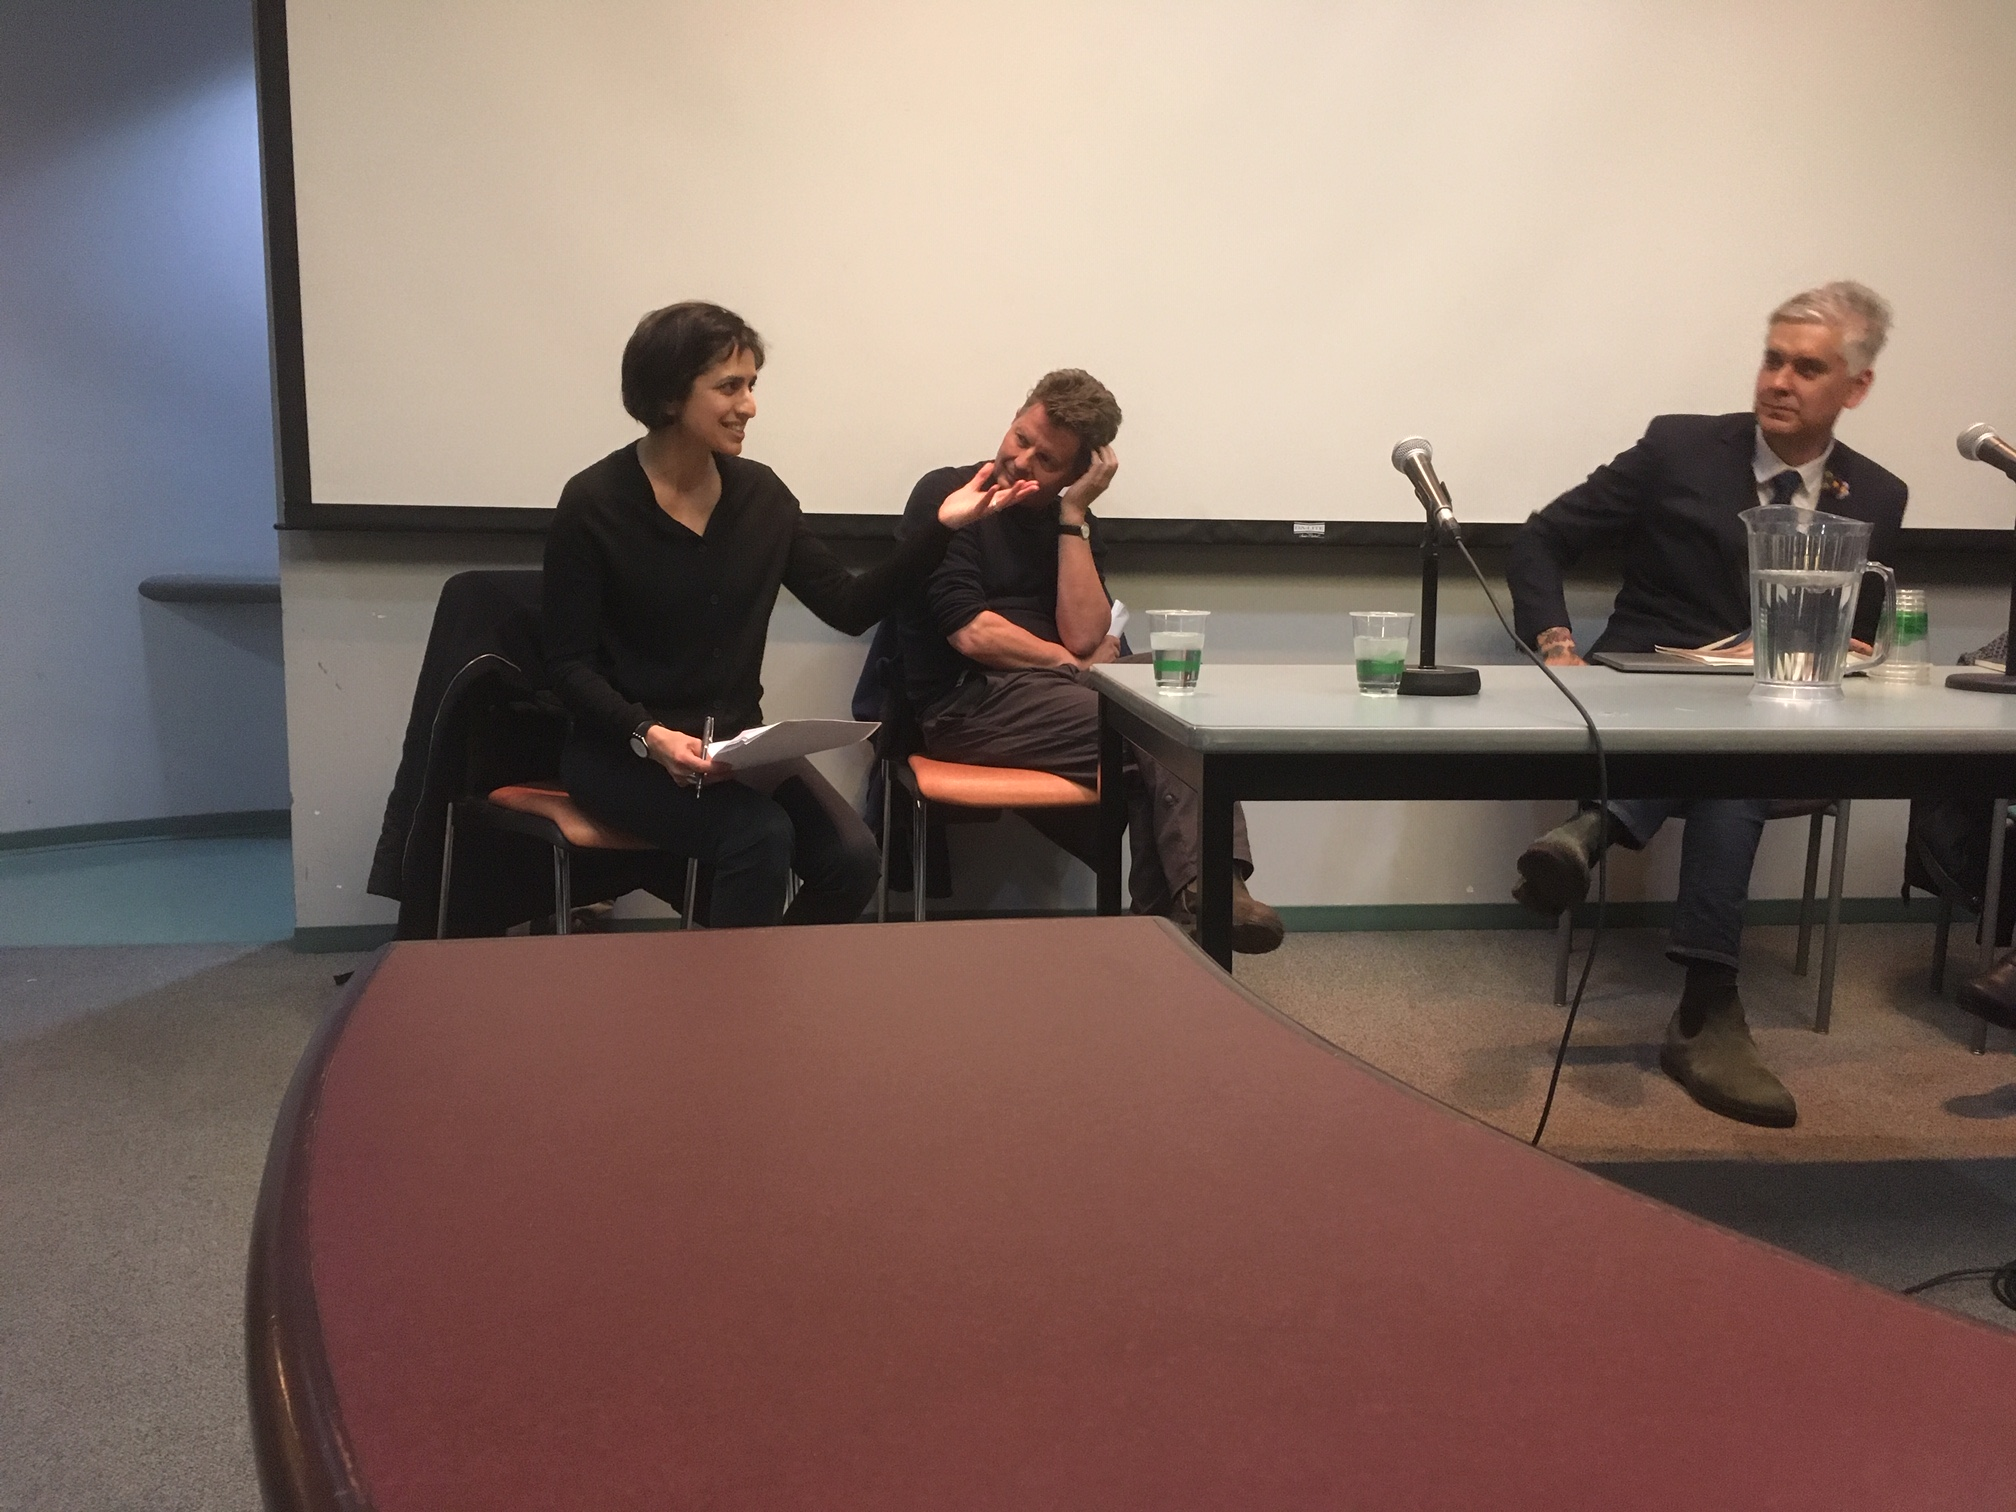 Colonial Lives of Property Panel - SFU Harbour Centre - April 9, 2019 (13).JPG